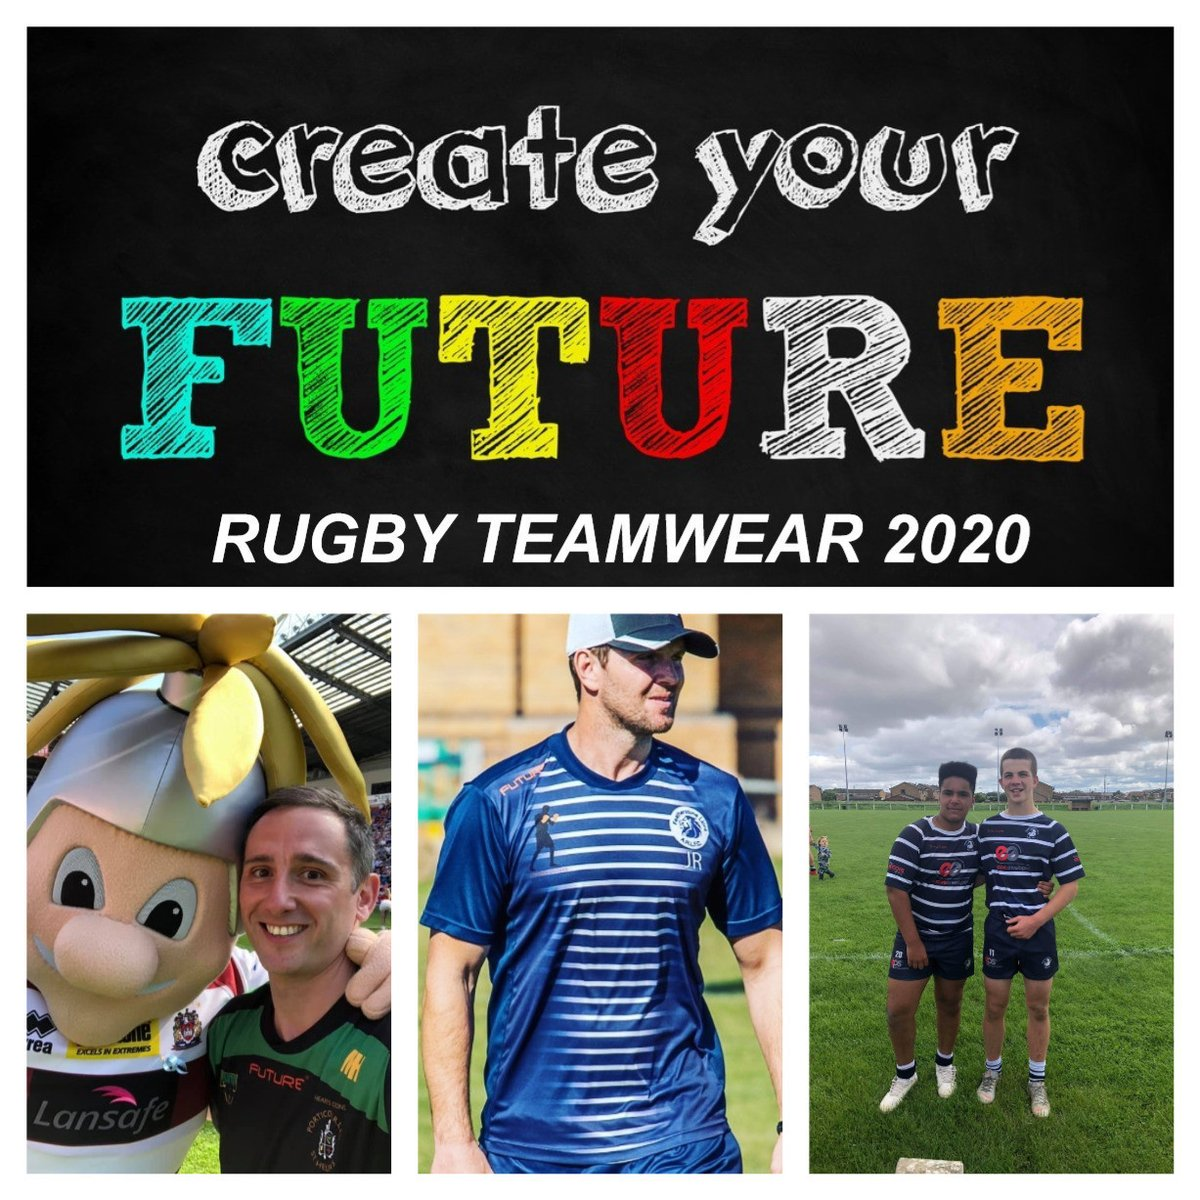 Rugby Teamwear 2020? Partner with Future and receive-3 weeks supply-no min reorders-club shop-self design ranges-affordable products-unrivalled services! #makeithappen <br>http://pic.twitter.com/EkclnsULWy